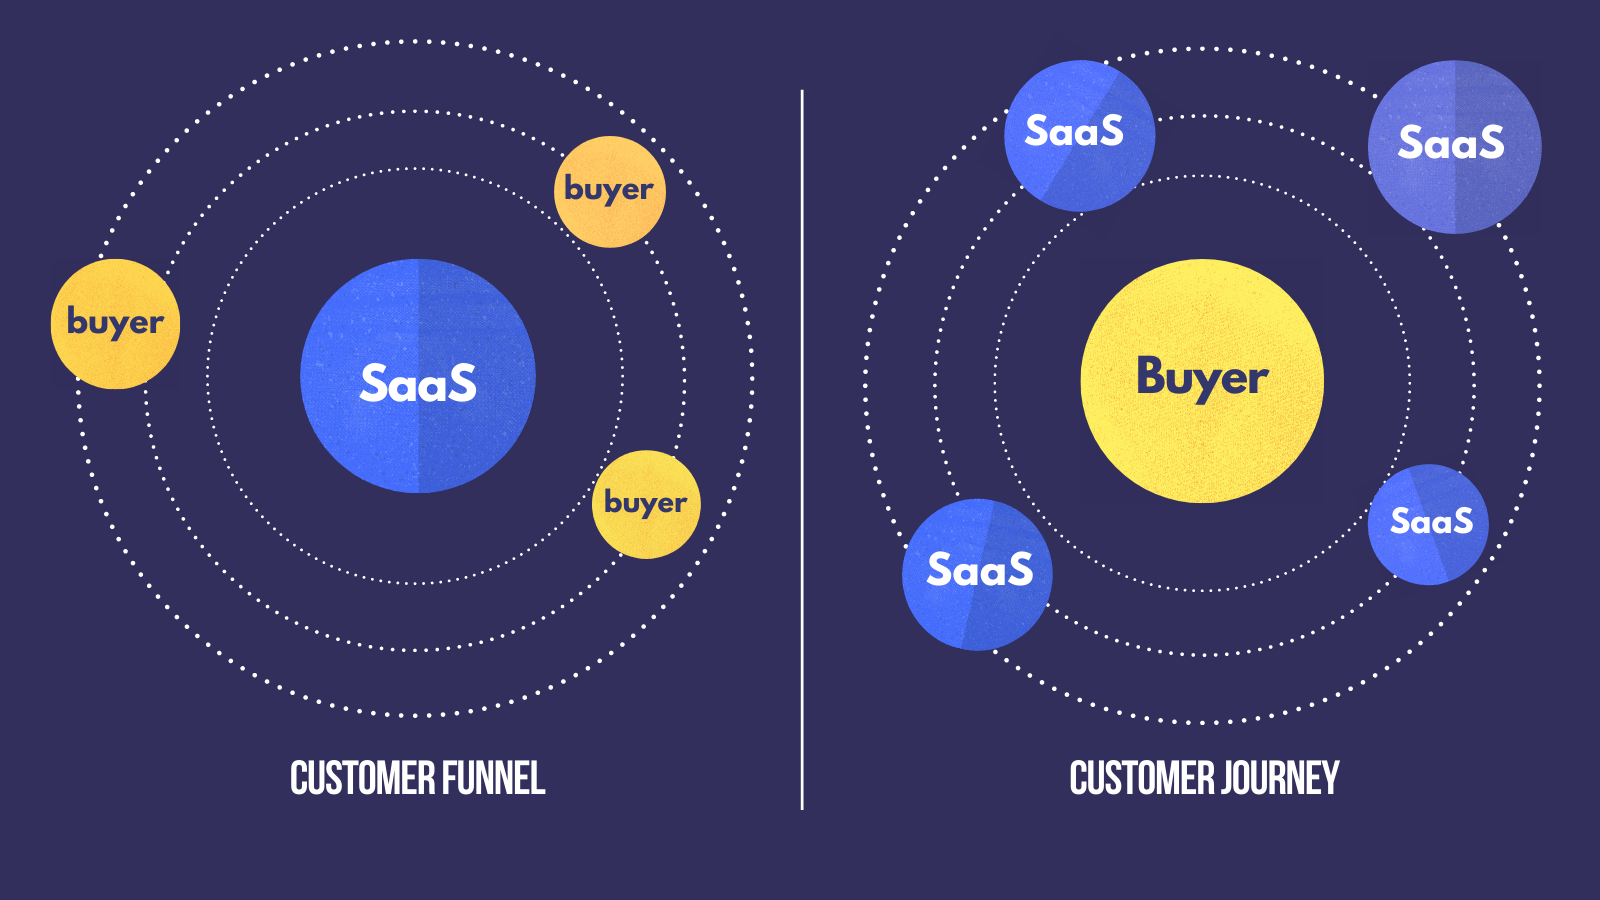 The difference between sales funnel and customer journey